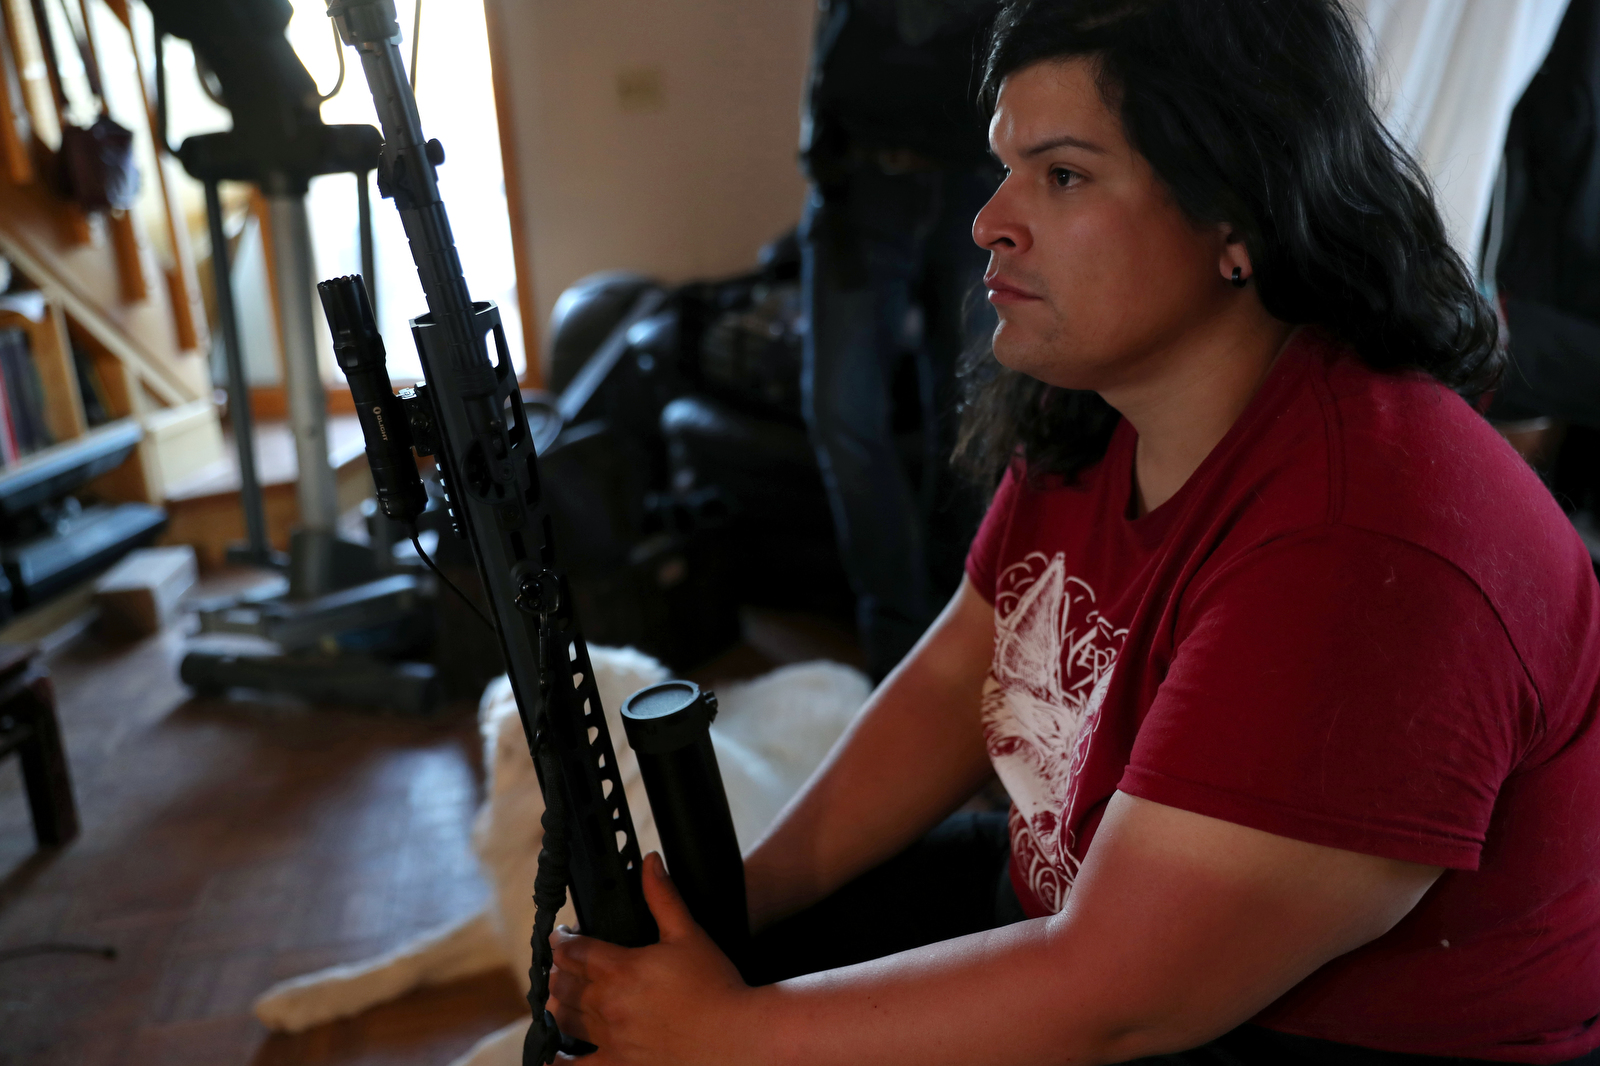 Bonnie Nelson sits with Nelson's rifle, nicknamed Yoko in the living room of the ranch house at the Tenacious Unicorn Ranch. Nelson, who used to be uncomfortable with guns, bought the rifle after witnessing Westcliffe's July 4th protest in 2020, which featured some banners and flags that reminded Nelson and Logue of fascism.